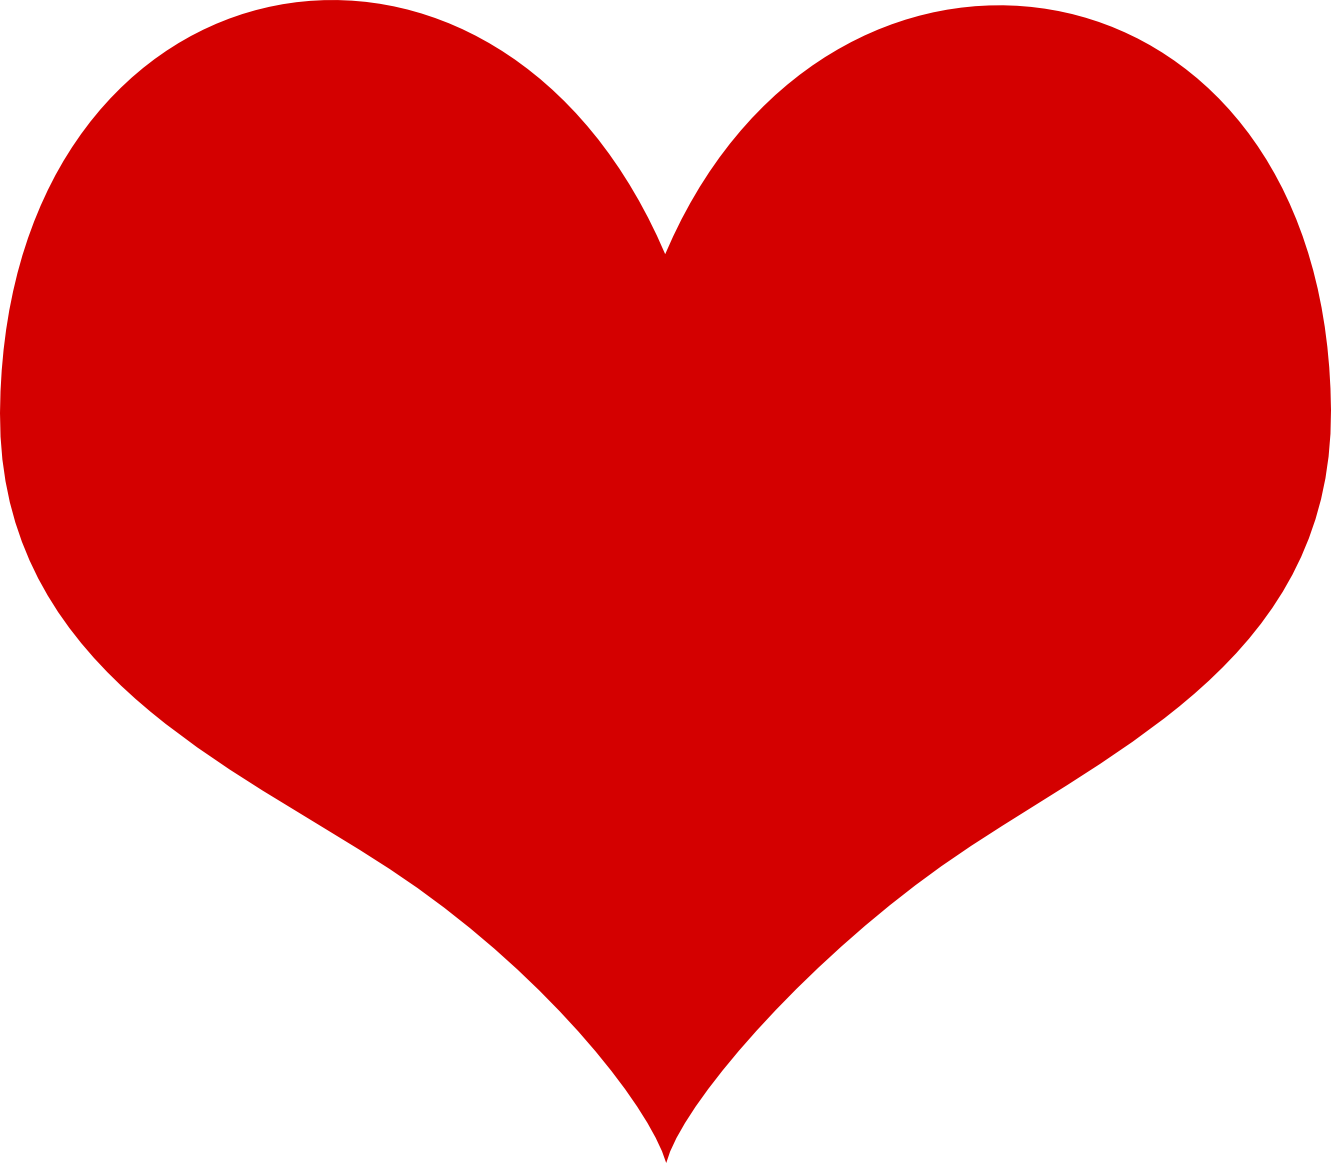 heart_PNG706.png